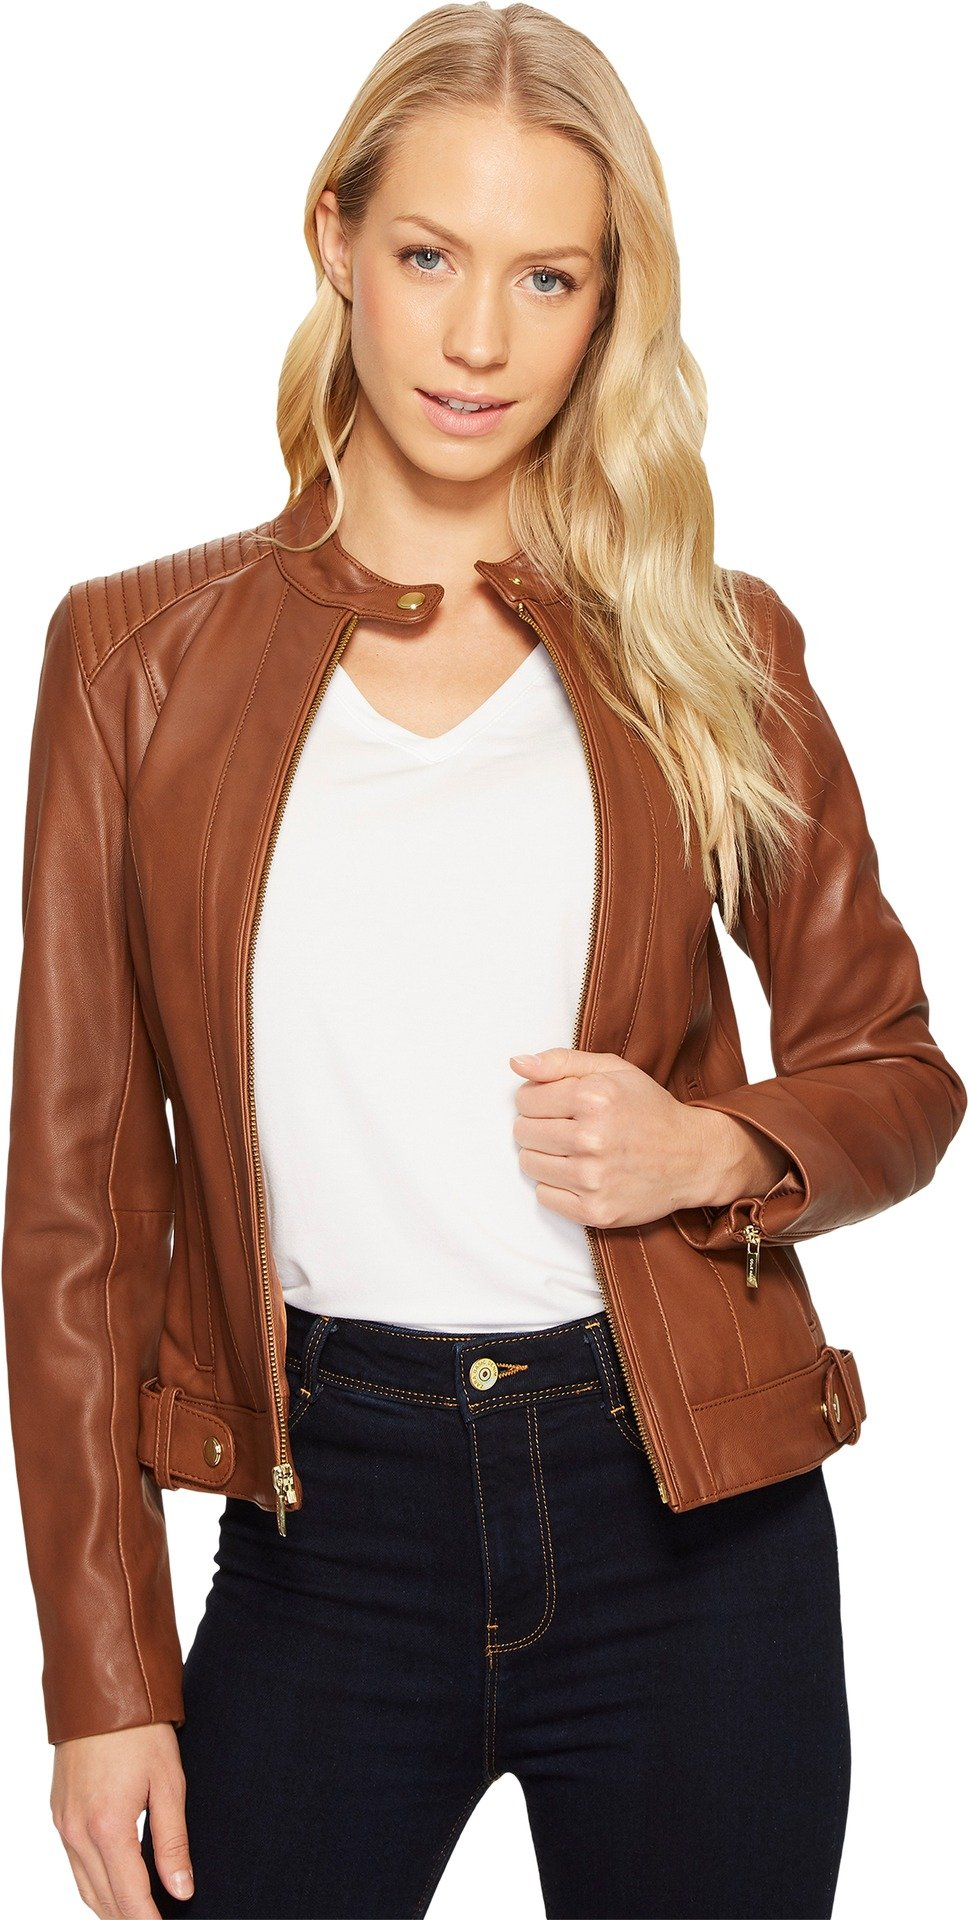 Cole Haan Women's Leather Racer Jacket with Quilted Panels Chestnut Jacket